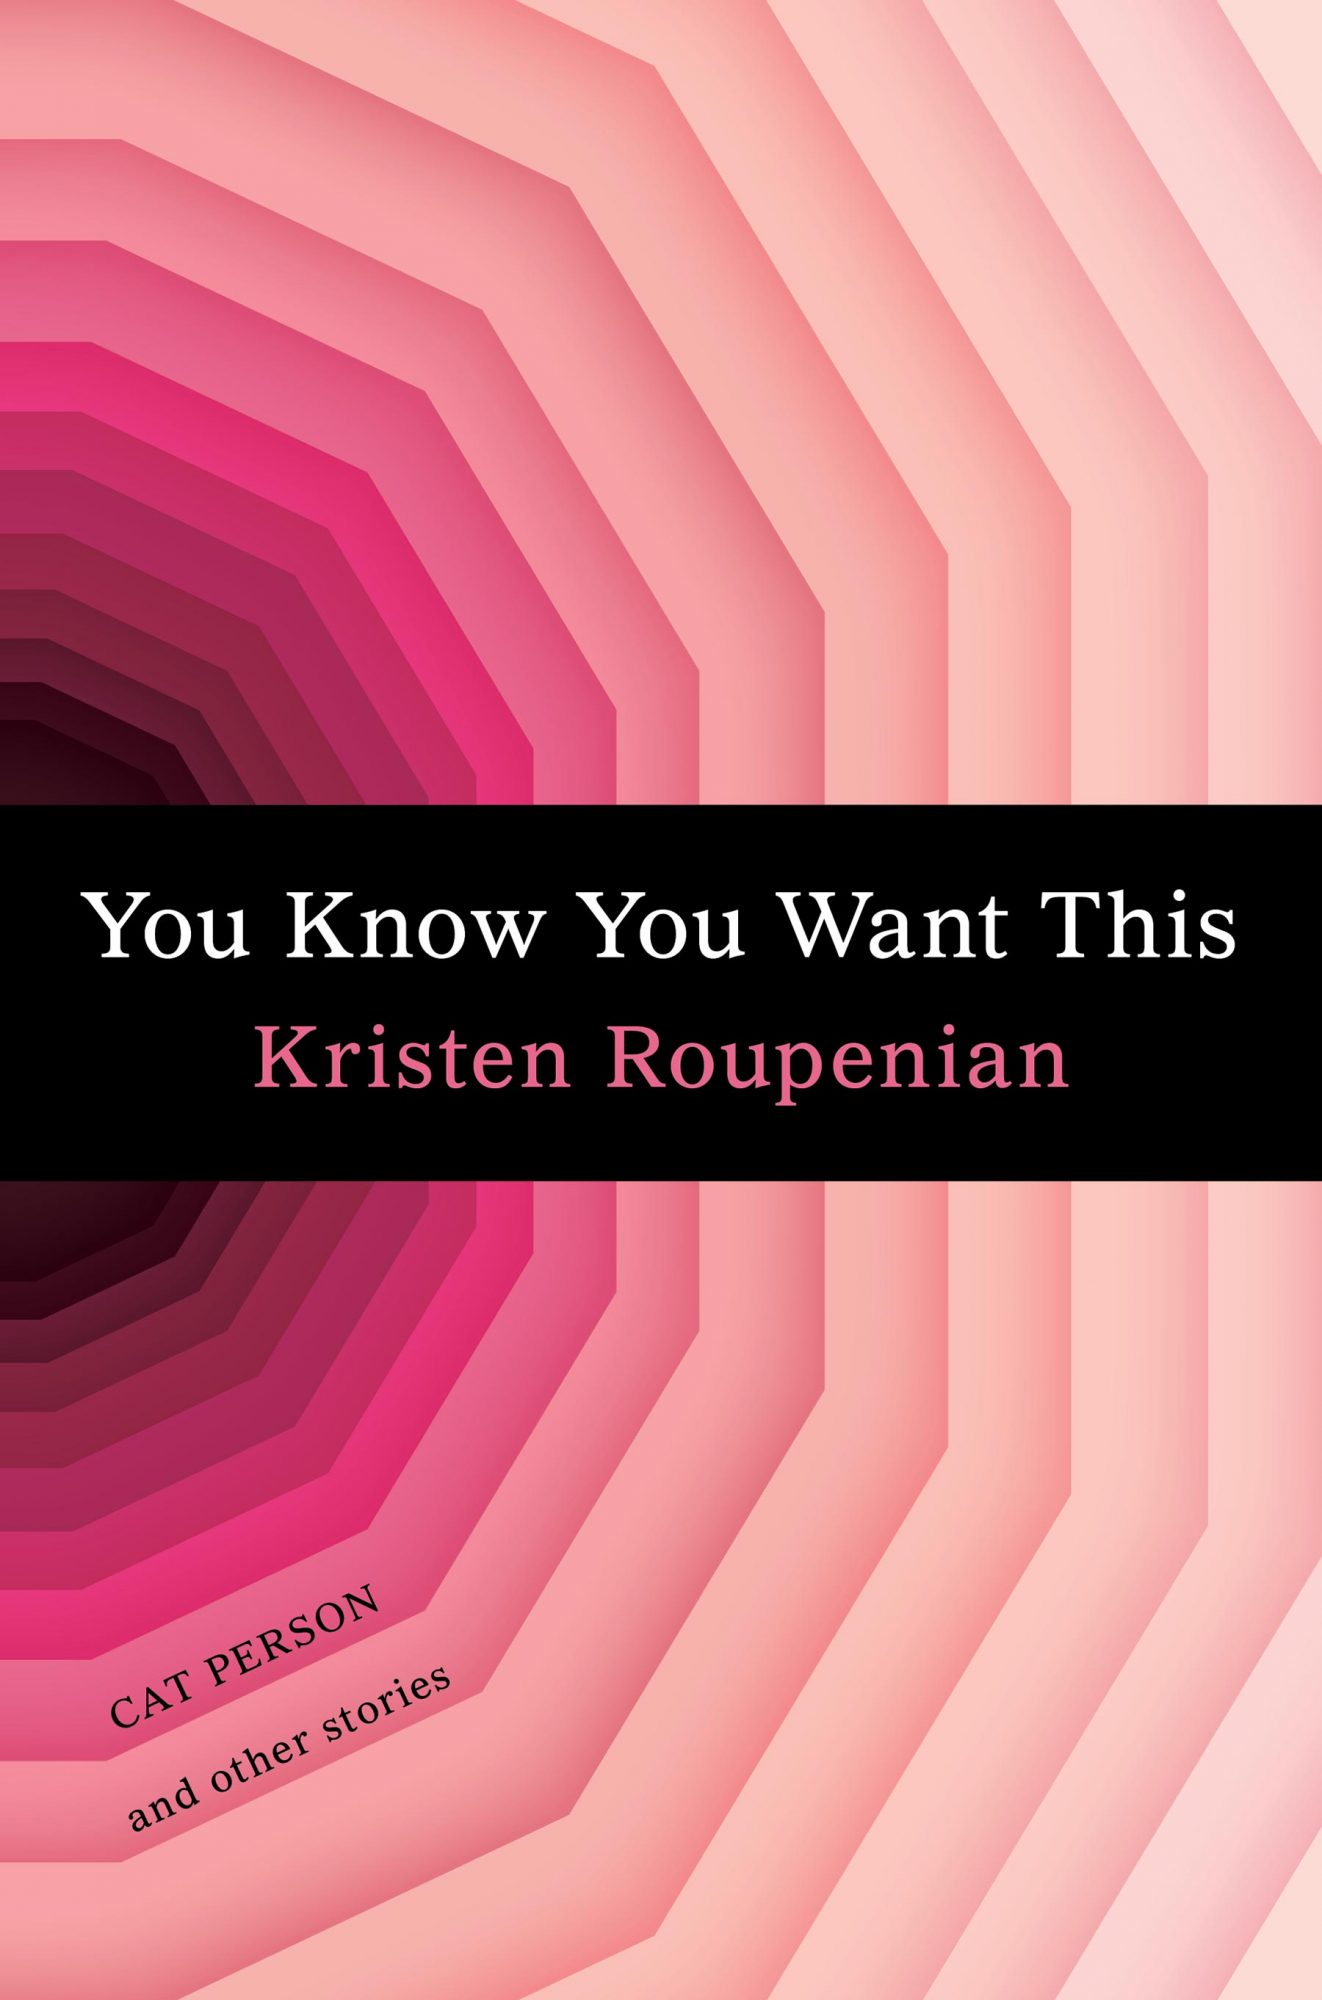 You Know You Want This by Kristen RoupenianCredit: Scout Press